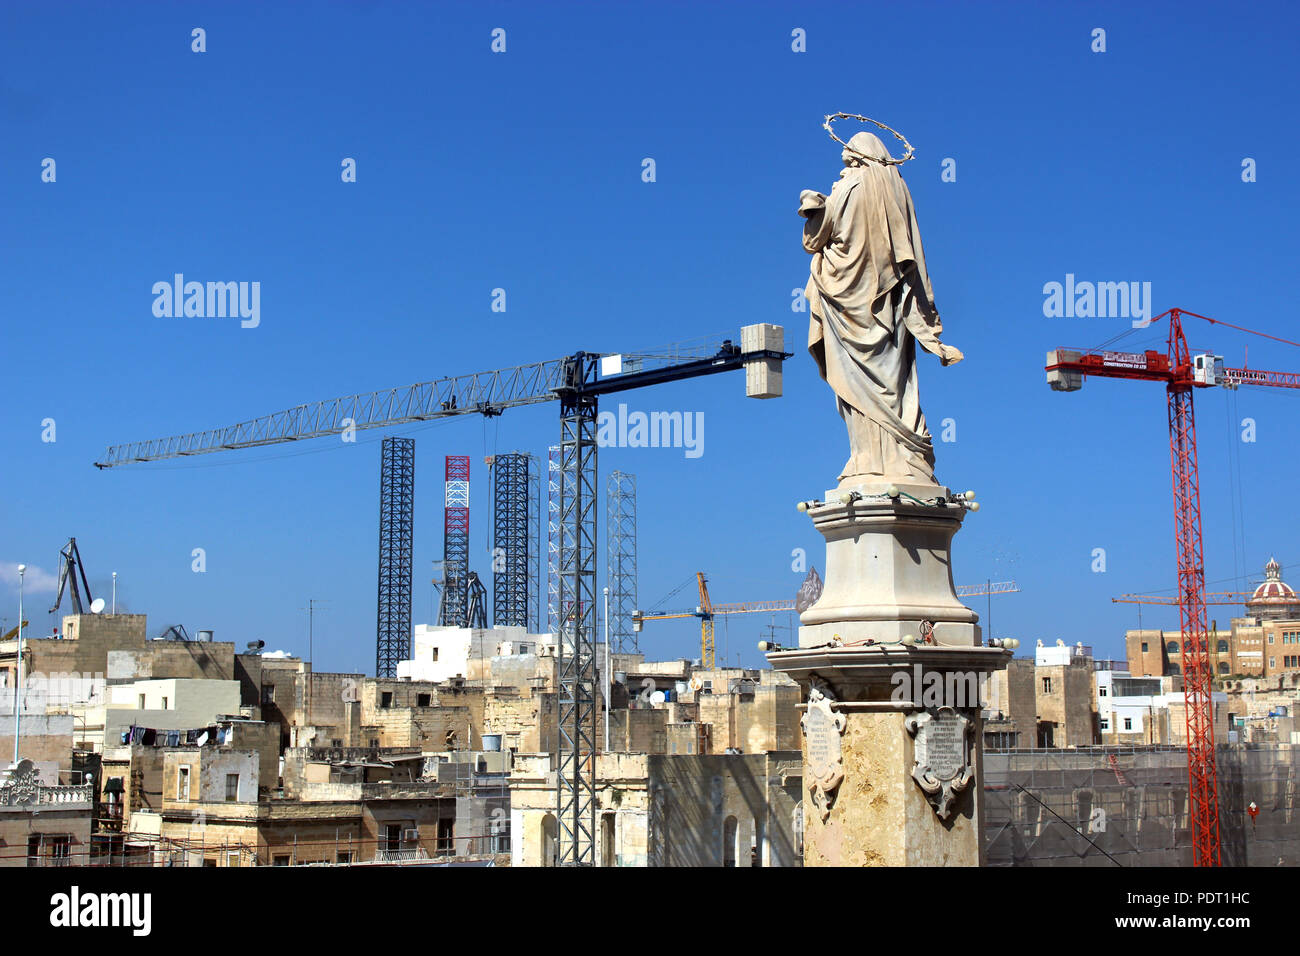 faith and progress: construction cranes beside a statue of the Virgin Mary - Stock Image